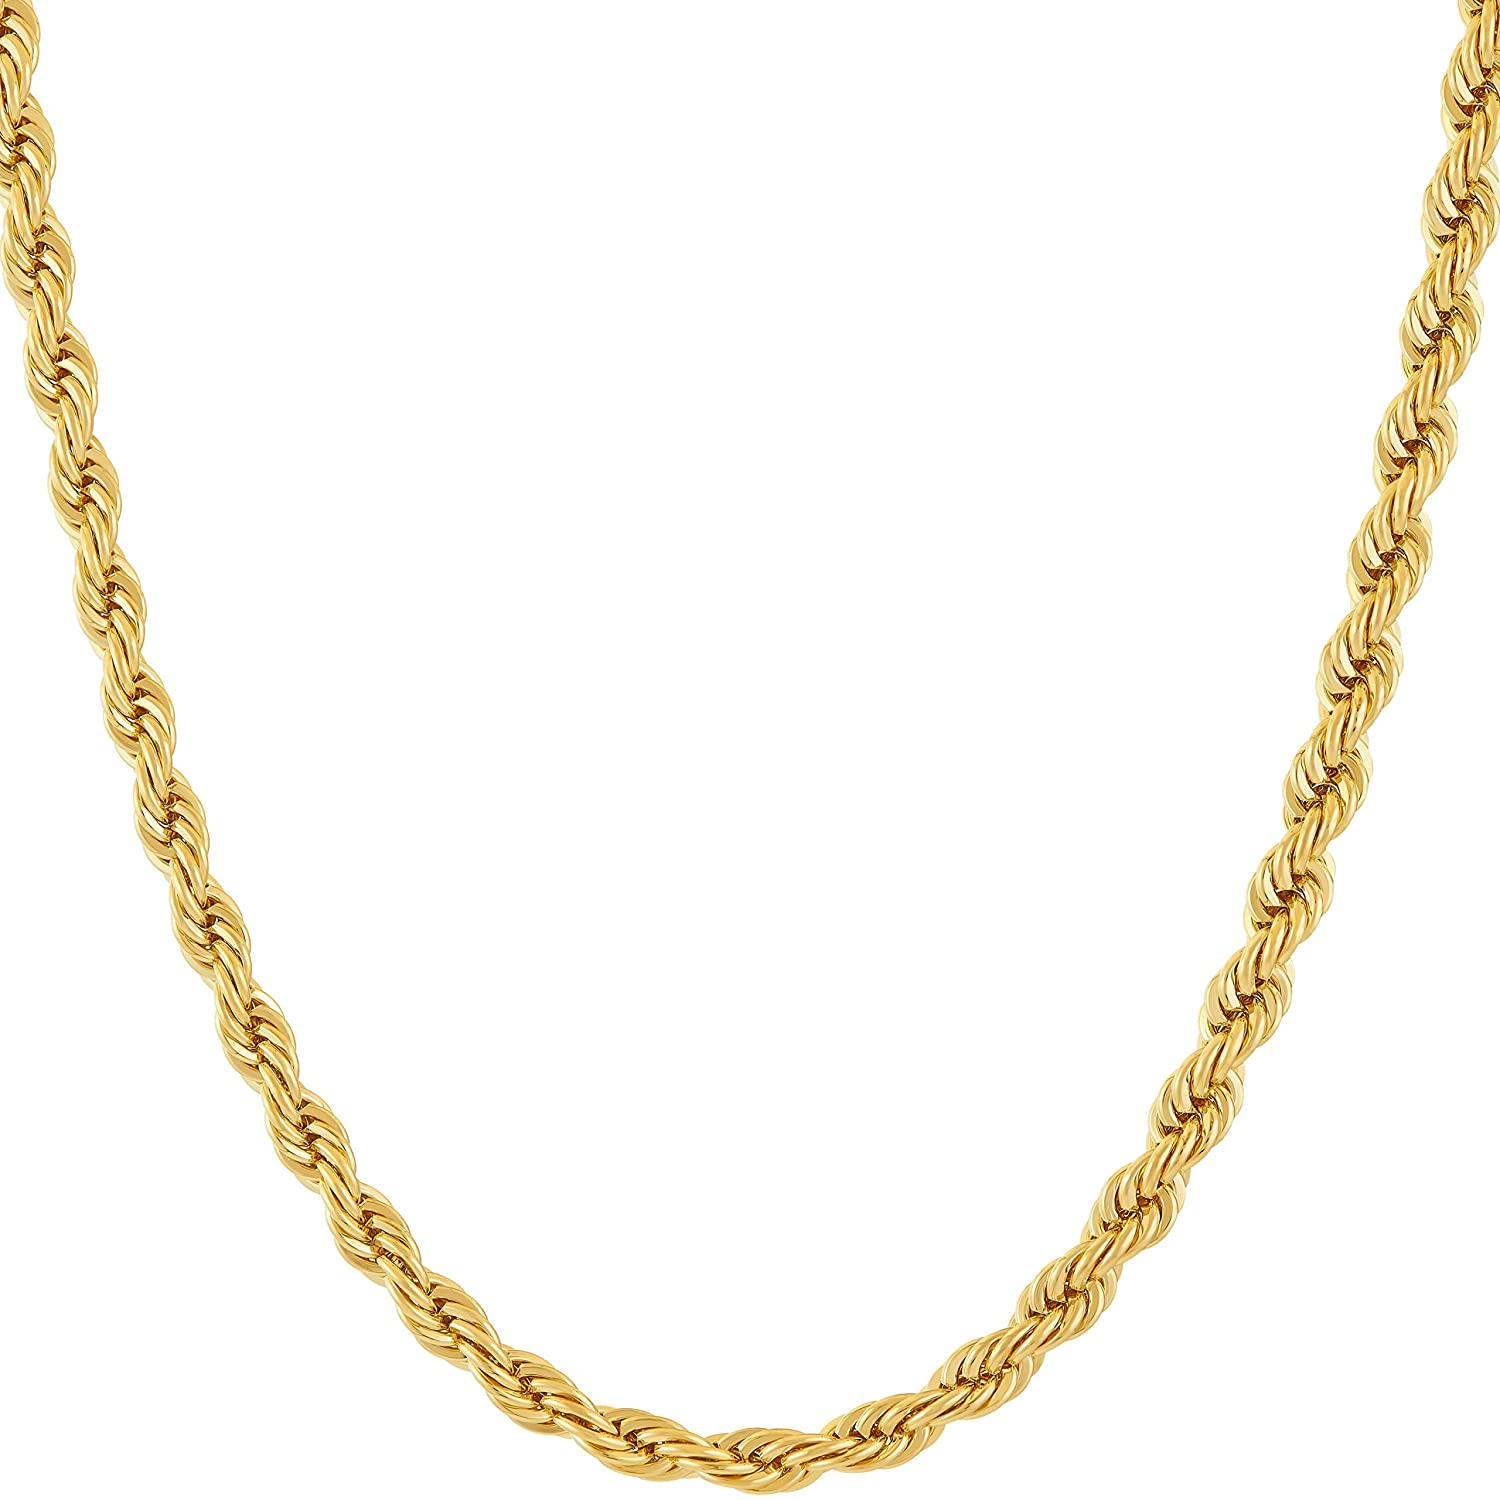 Lifetime Jewelry Necklaces for Women and Men [ 4mm Rope Chain ] Up to 20X More 24k Real Gold Plating Than Other Plated Gold Necklaces for Women or Chains for Men - Durable Necklace Chain 16 to 30 inch 24K Gold with Inlaid Bronze Premium Fashion Jewelry Gu